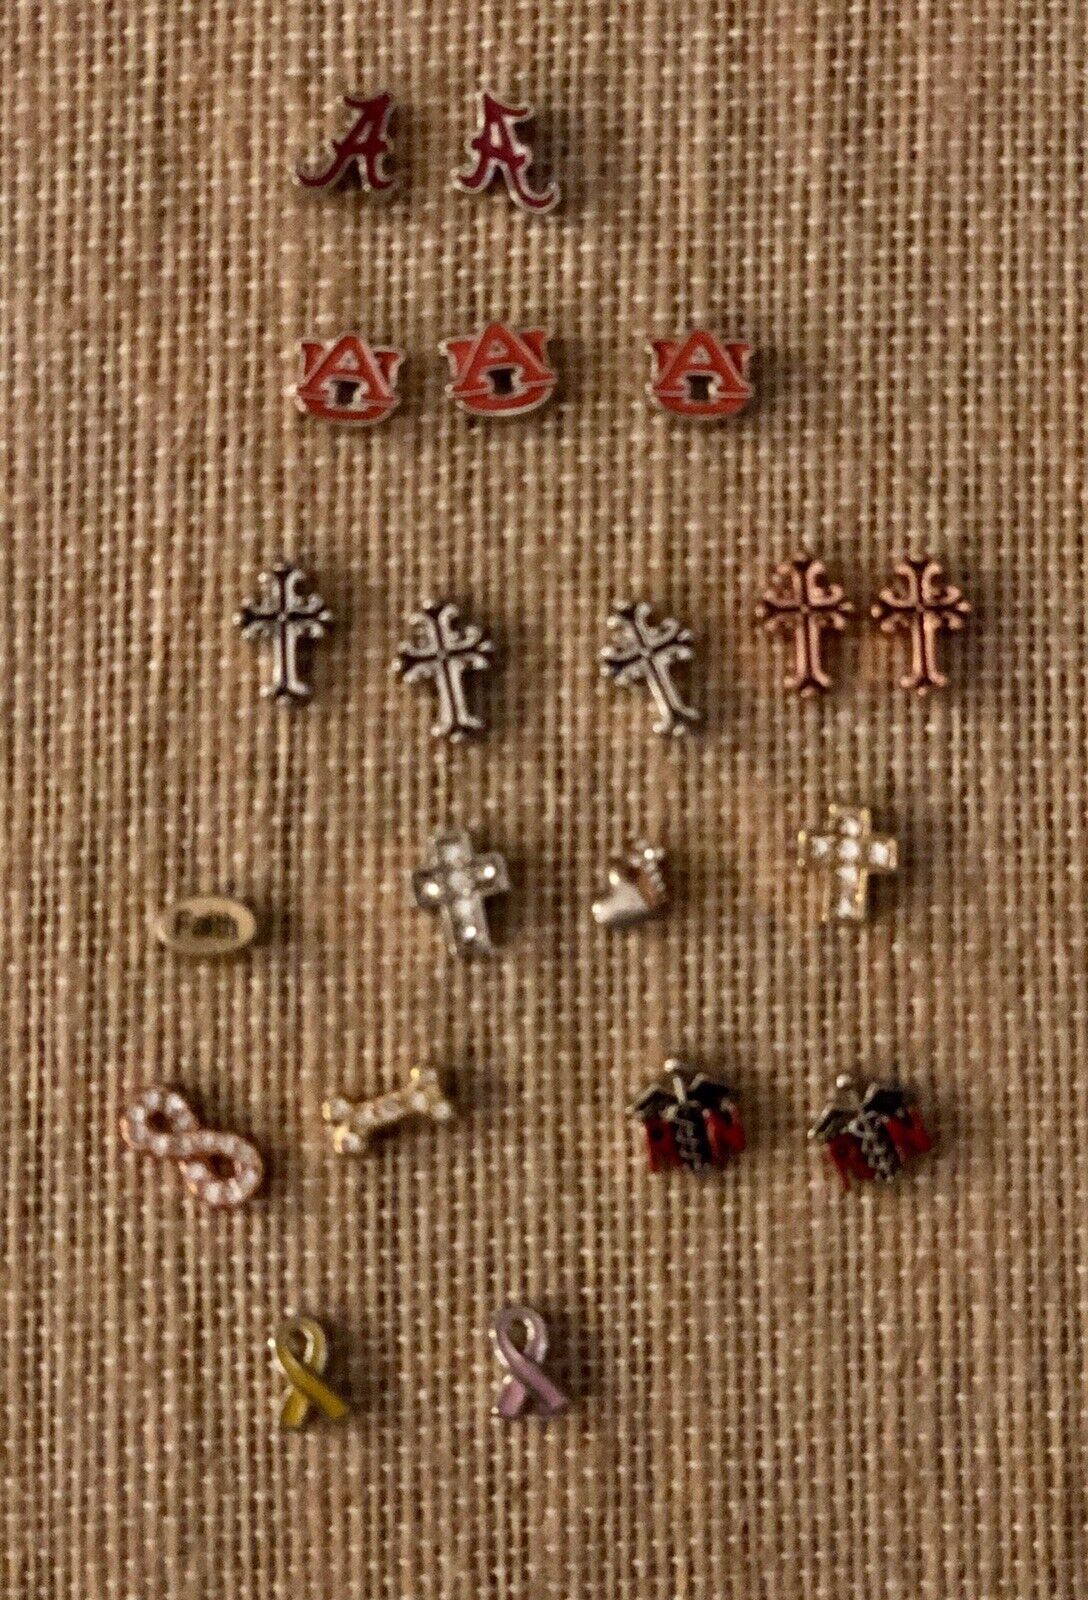 ORIGAMI OWL 20 BN CHARMS; CROSS, ALABAMA, AUBURN, CAUSES  4 Each OR ALL  60